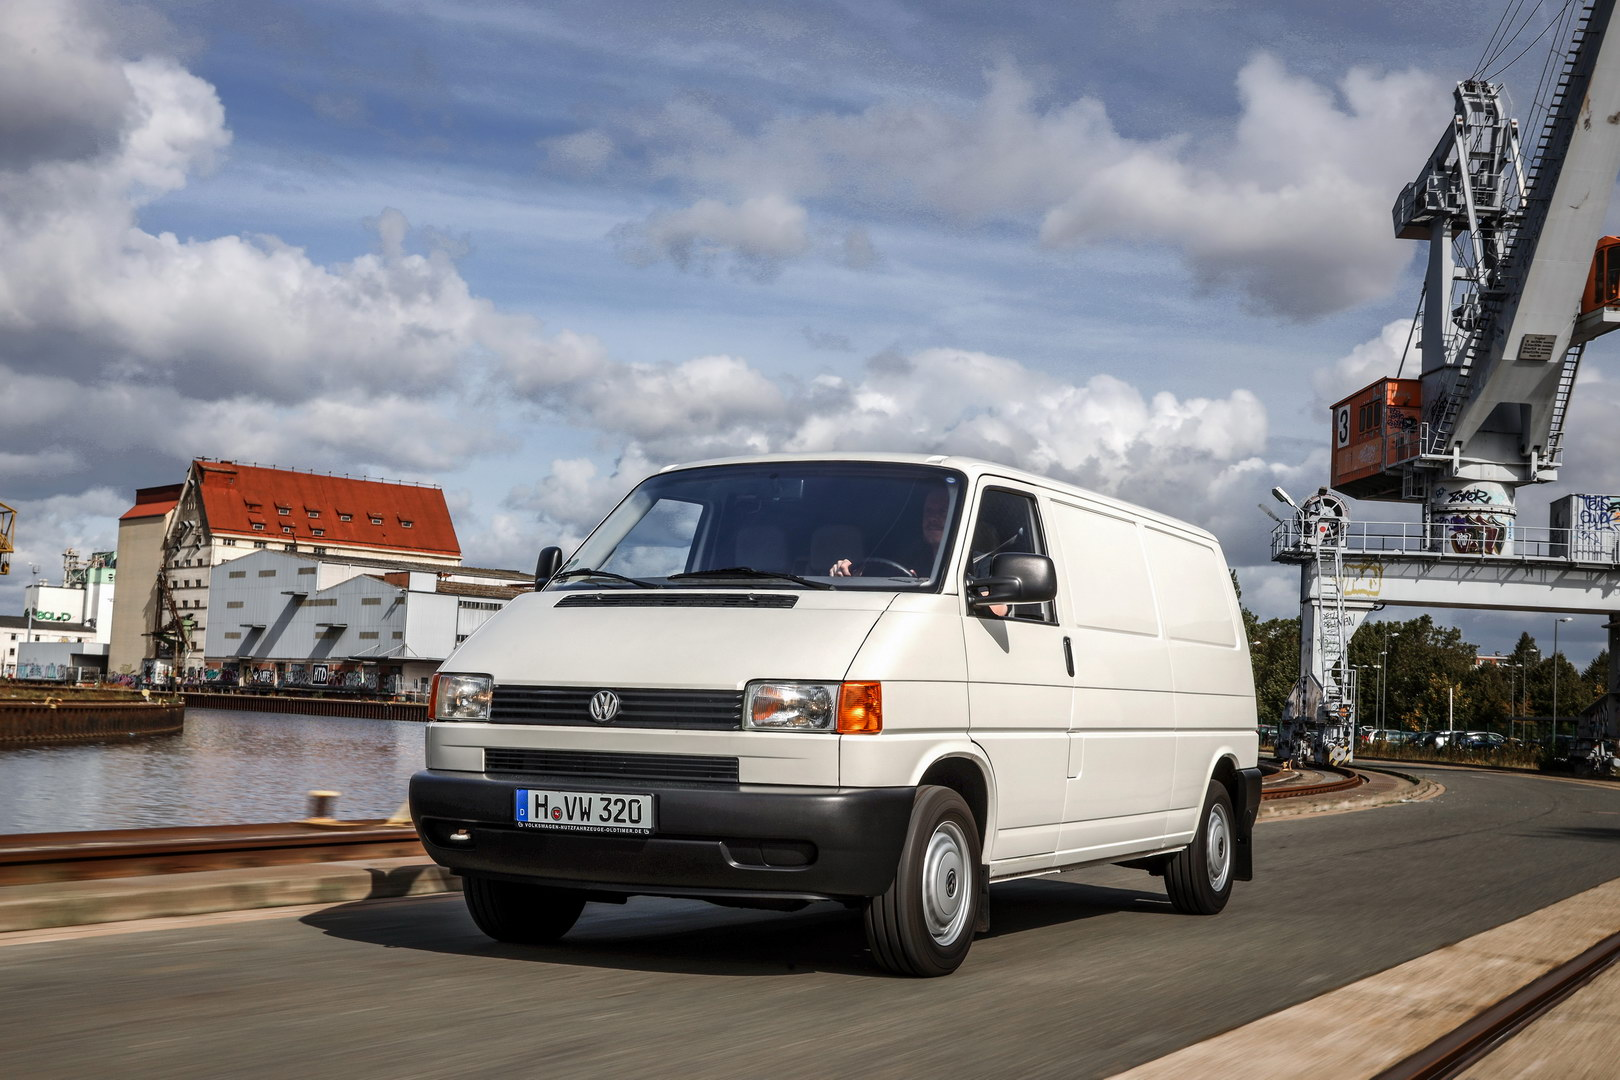 The T4 was also available with a long wheelbase.